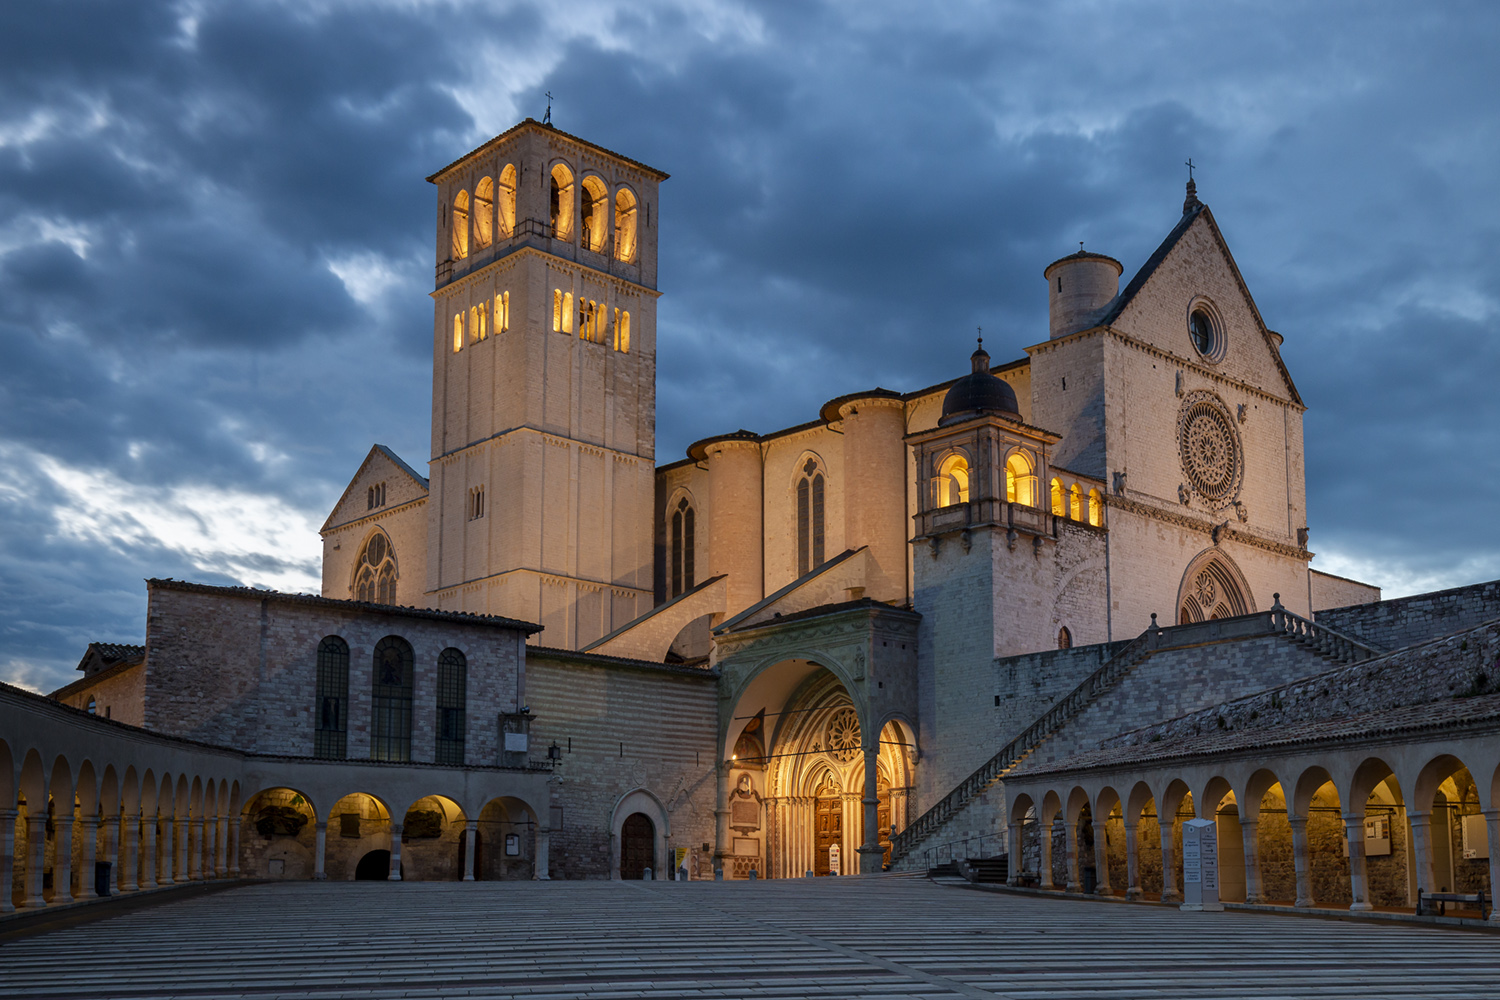 basilica-di-san-francesco-assisi-003